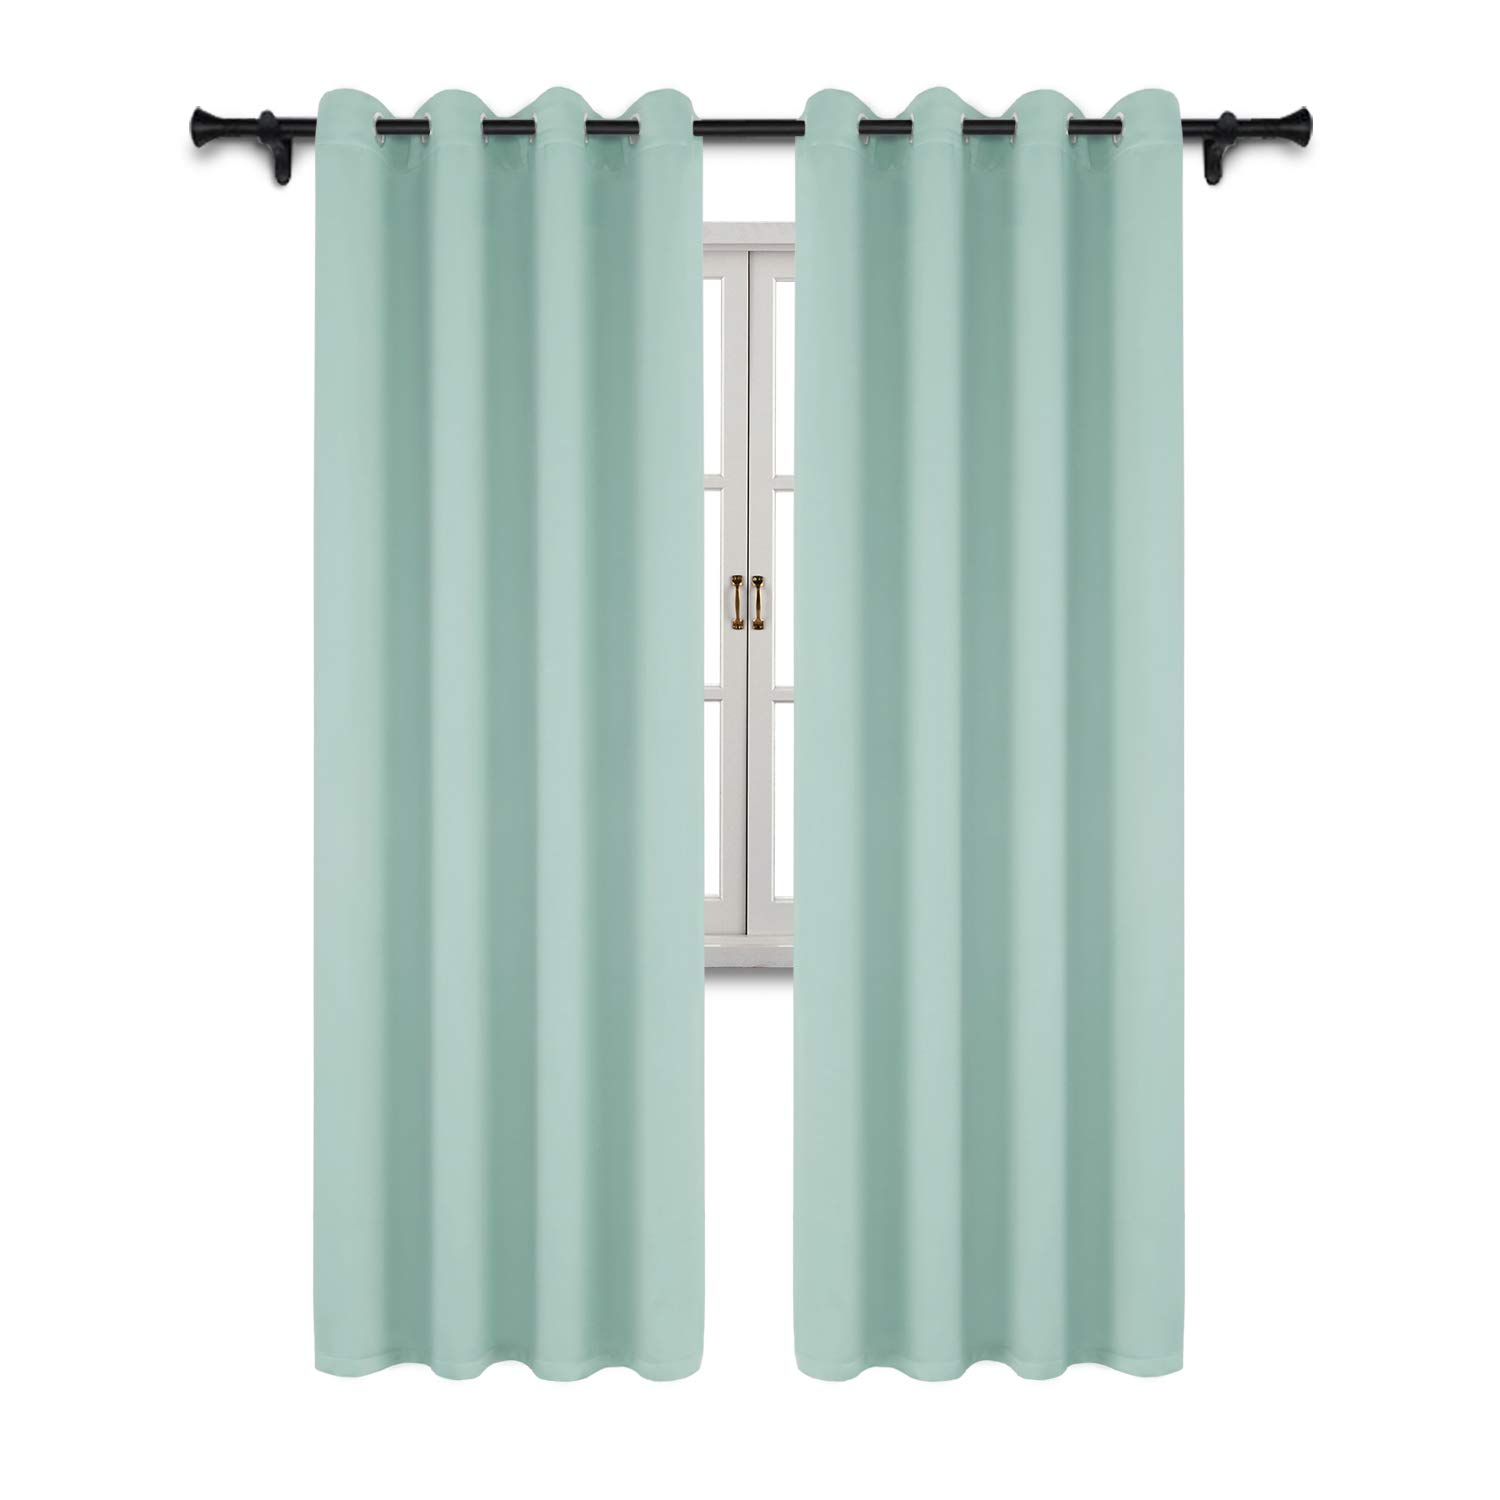 SUO AI TEXTILE Blackout Curtains Home Fashion Thermal Insulated Curtain Grommet Top Blackout Curtains for Living Room/Bedroom 52x84 Inch Mint Green 2 Curtain Panels